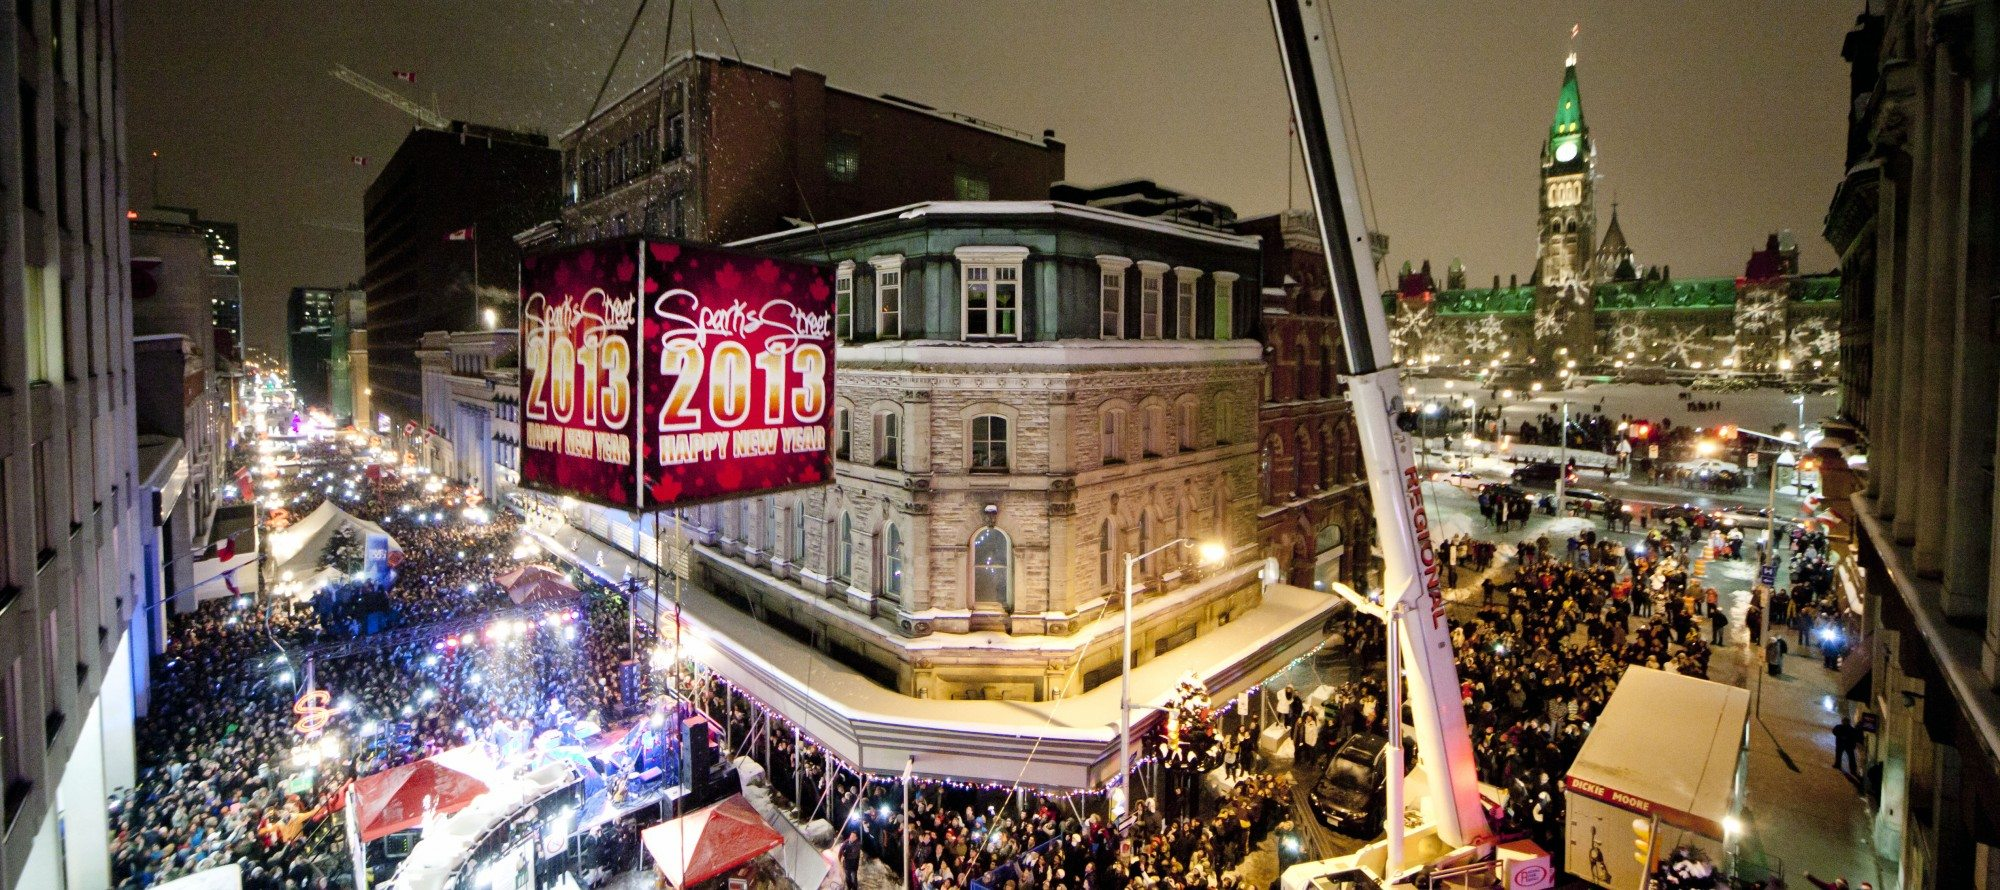 NEW YEAR'S EVE ROUNDUP: Events for the dancehall star, the fashionista, the PG crowd, and everyone else looking to ring in 2014